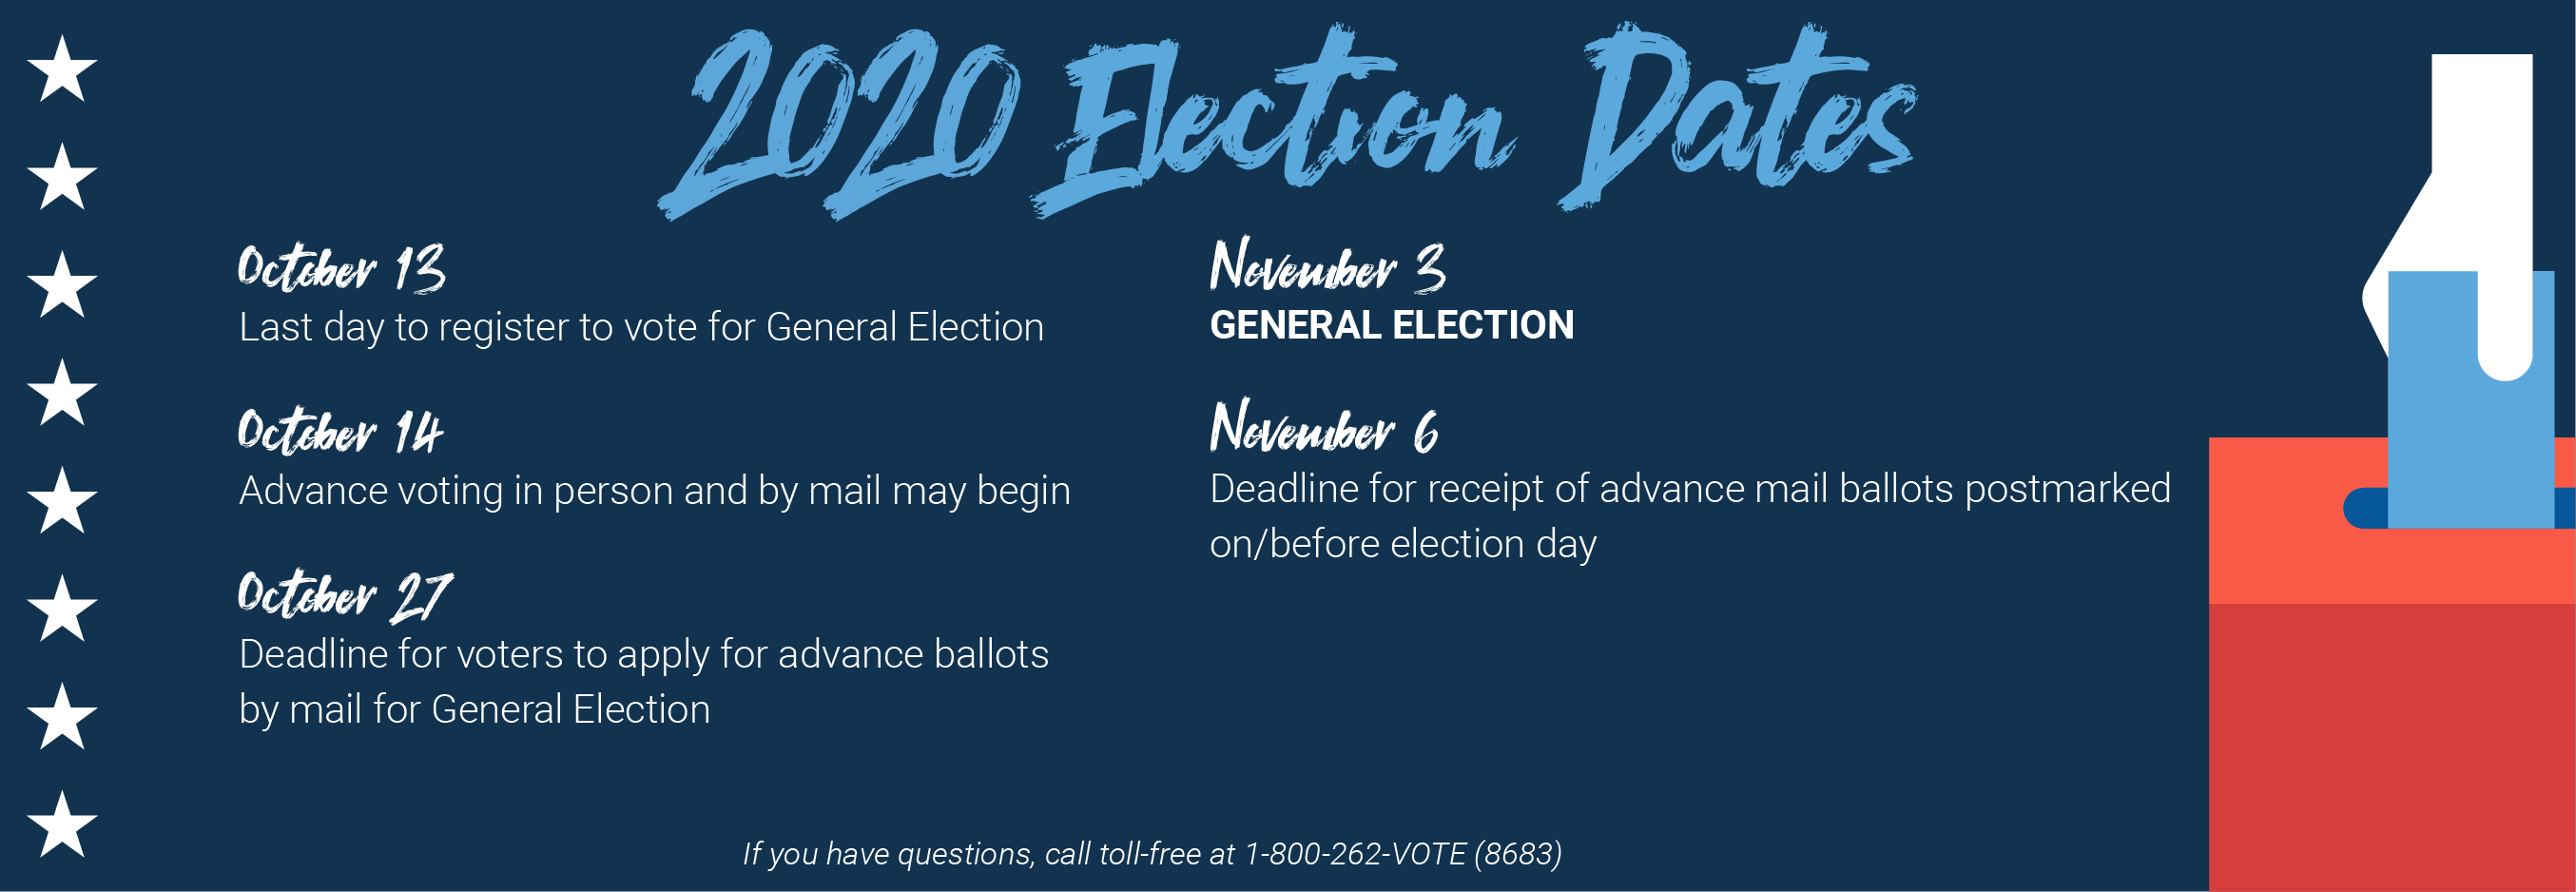 2020 election dates image